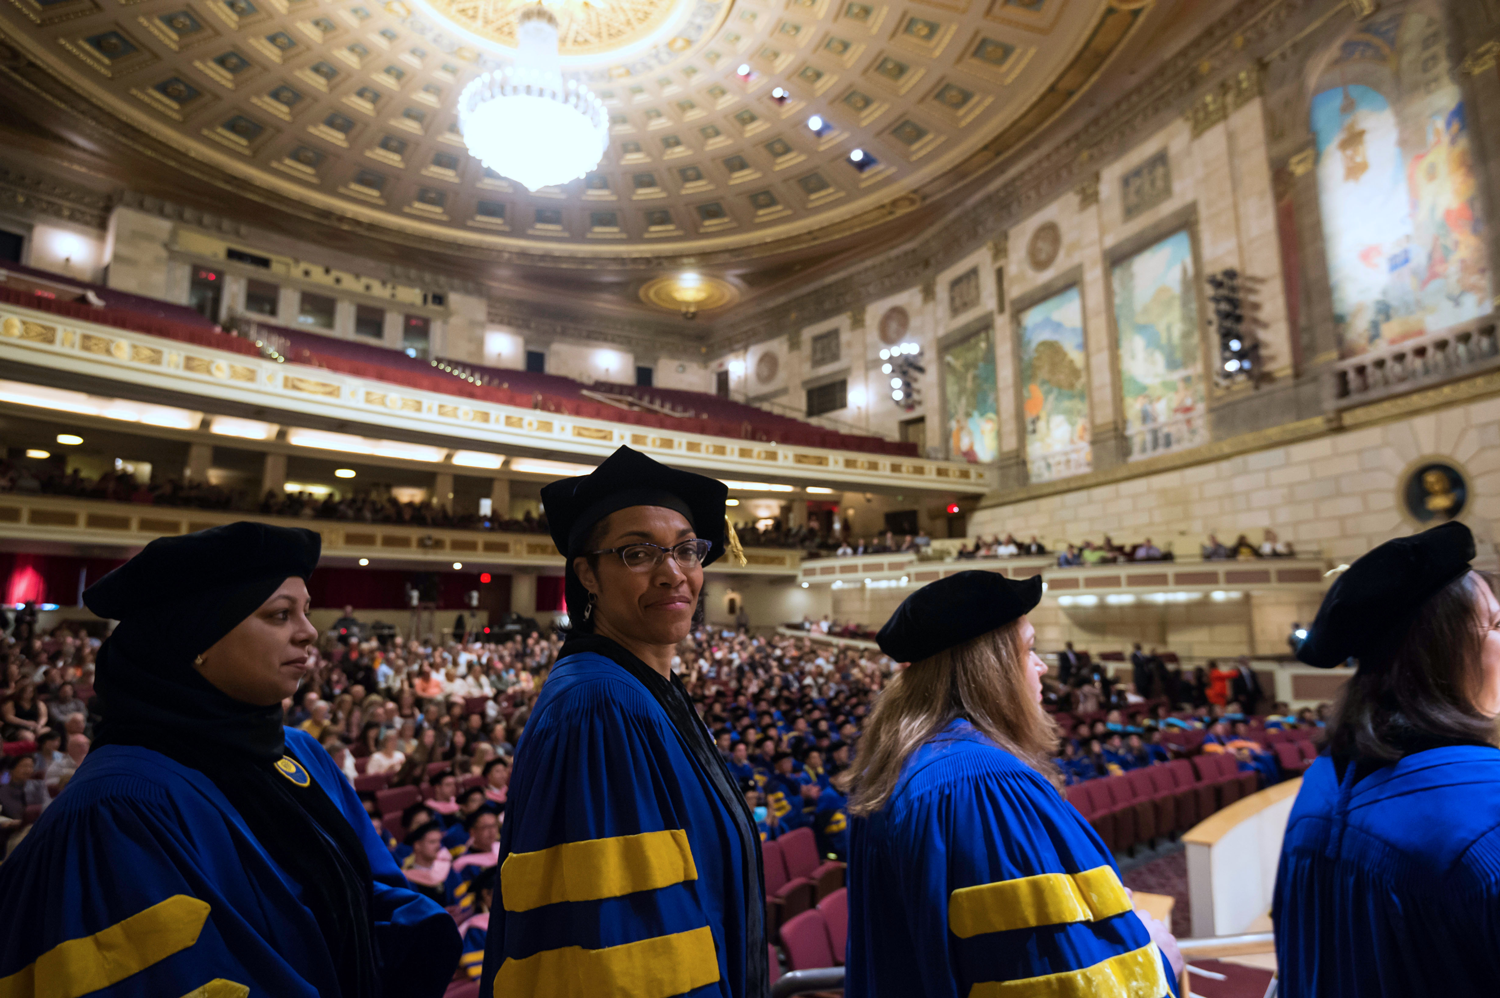 Graduation from University of Rochester